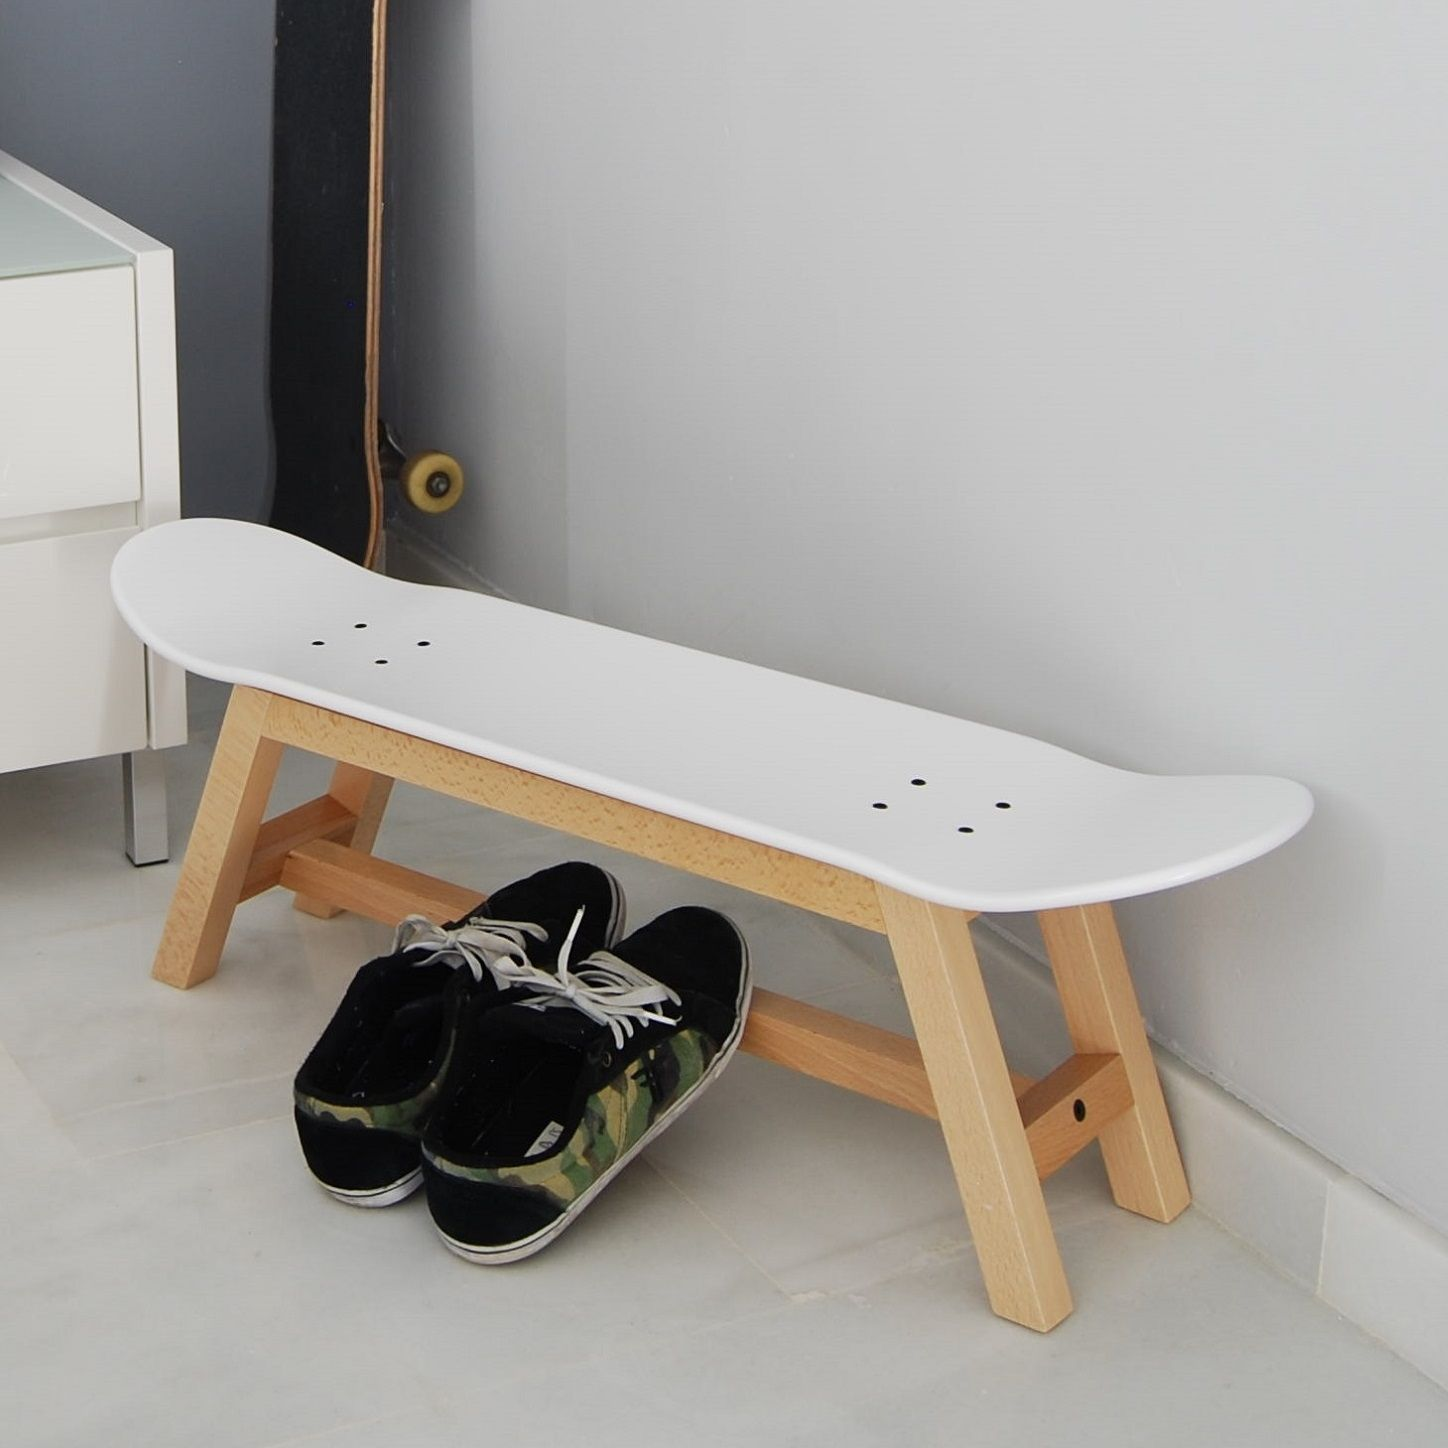 skateboard banc nollie heelflip nordique blanc chambre ado pinterest planche roulette. Black Bedroom Furniture Sets. Home Design Ideas